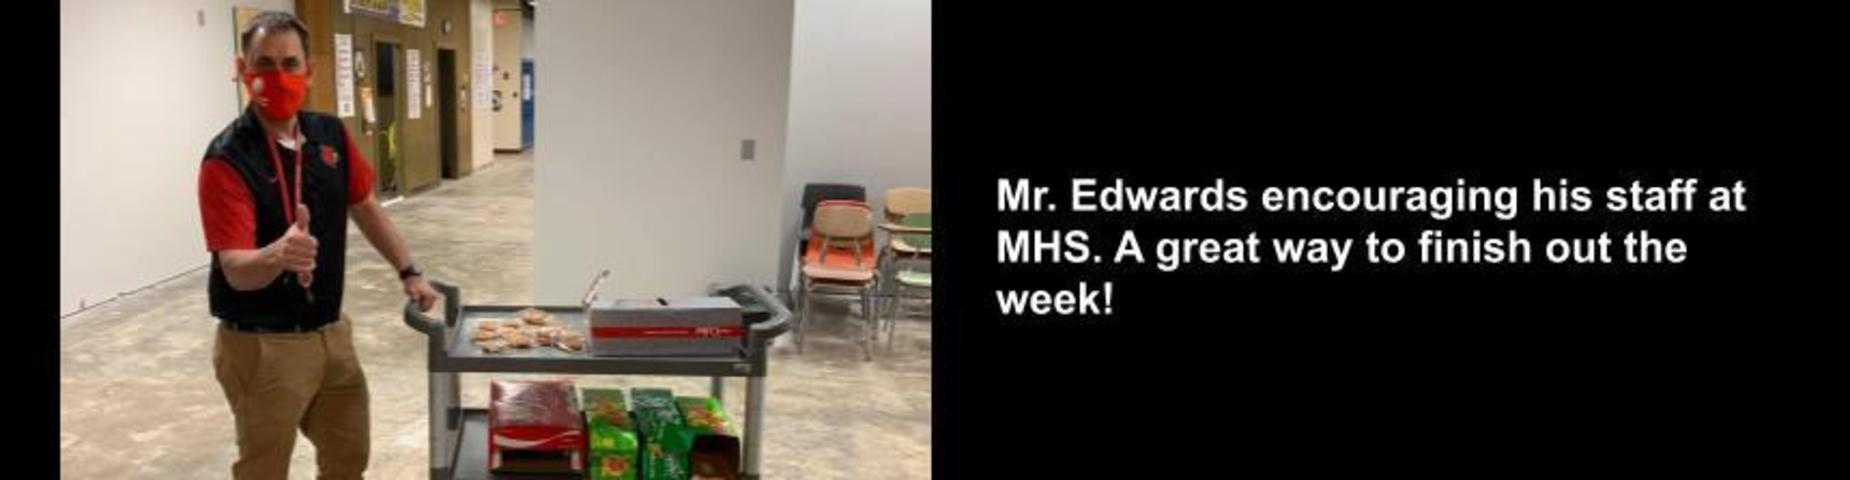 Mr. Edwards encouraging his staff at MHS with drinks and cookies.